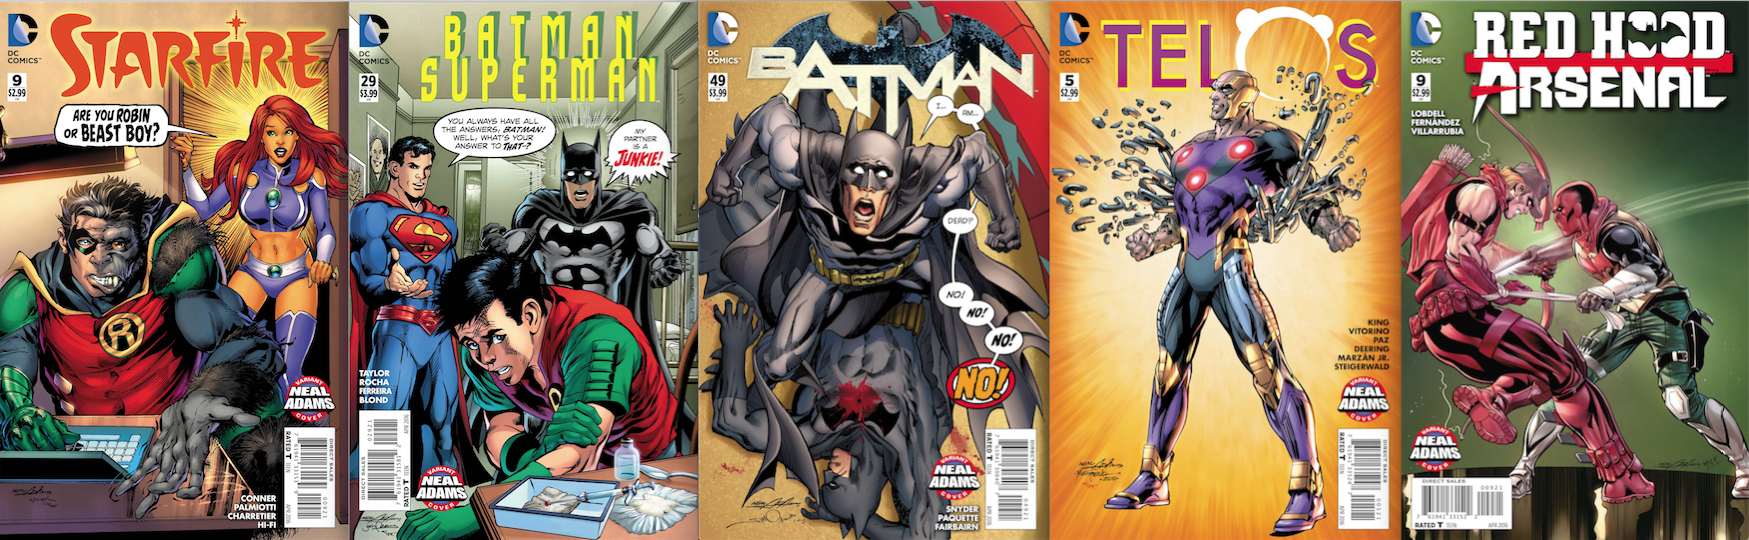 The Week 2 covers, out 2/10.